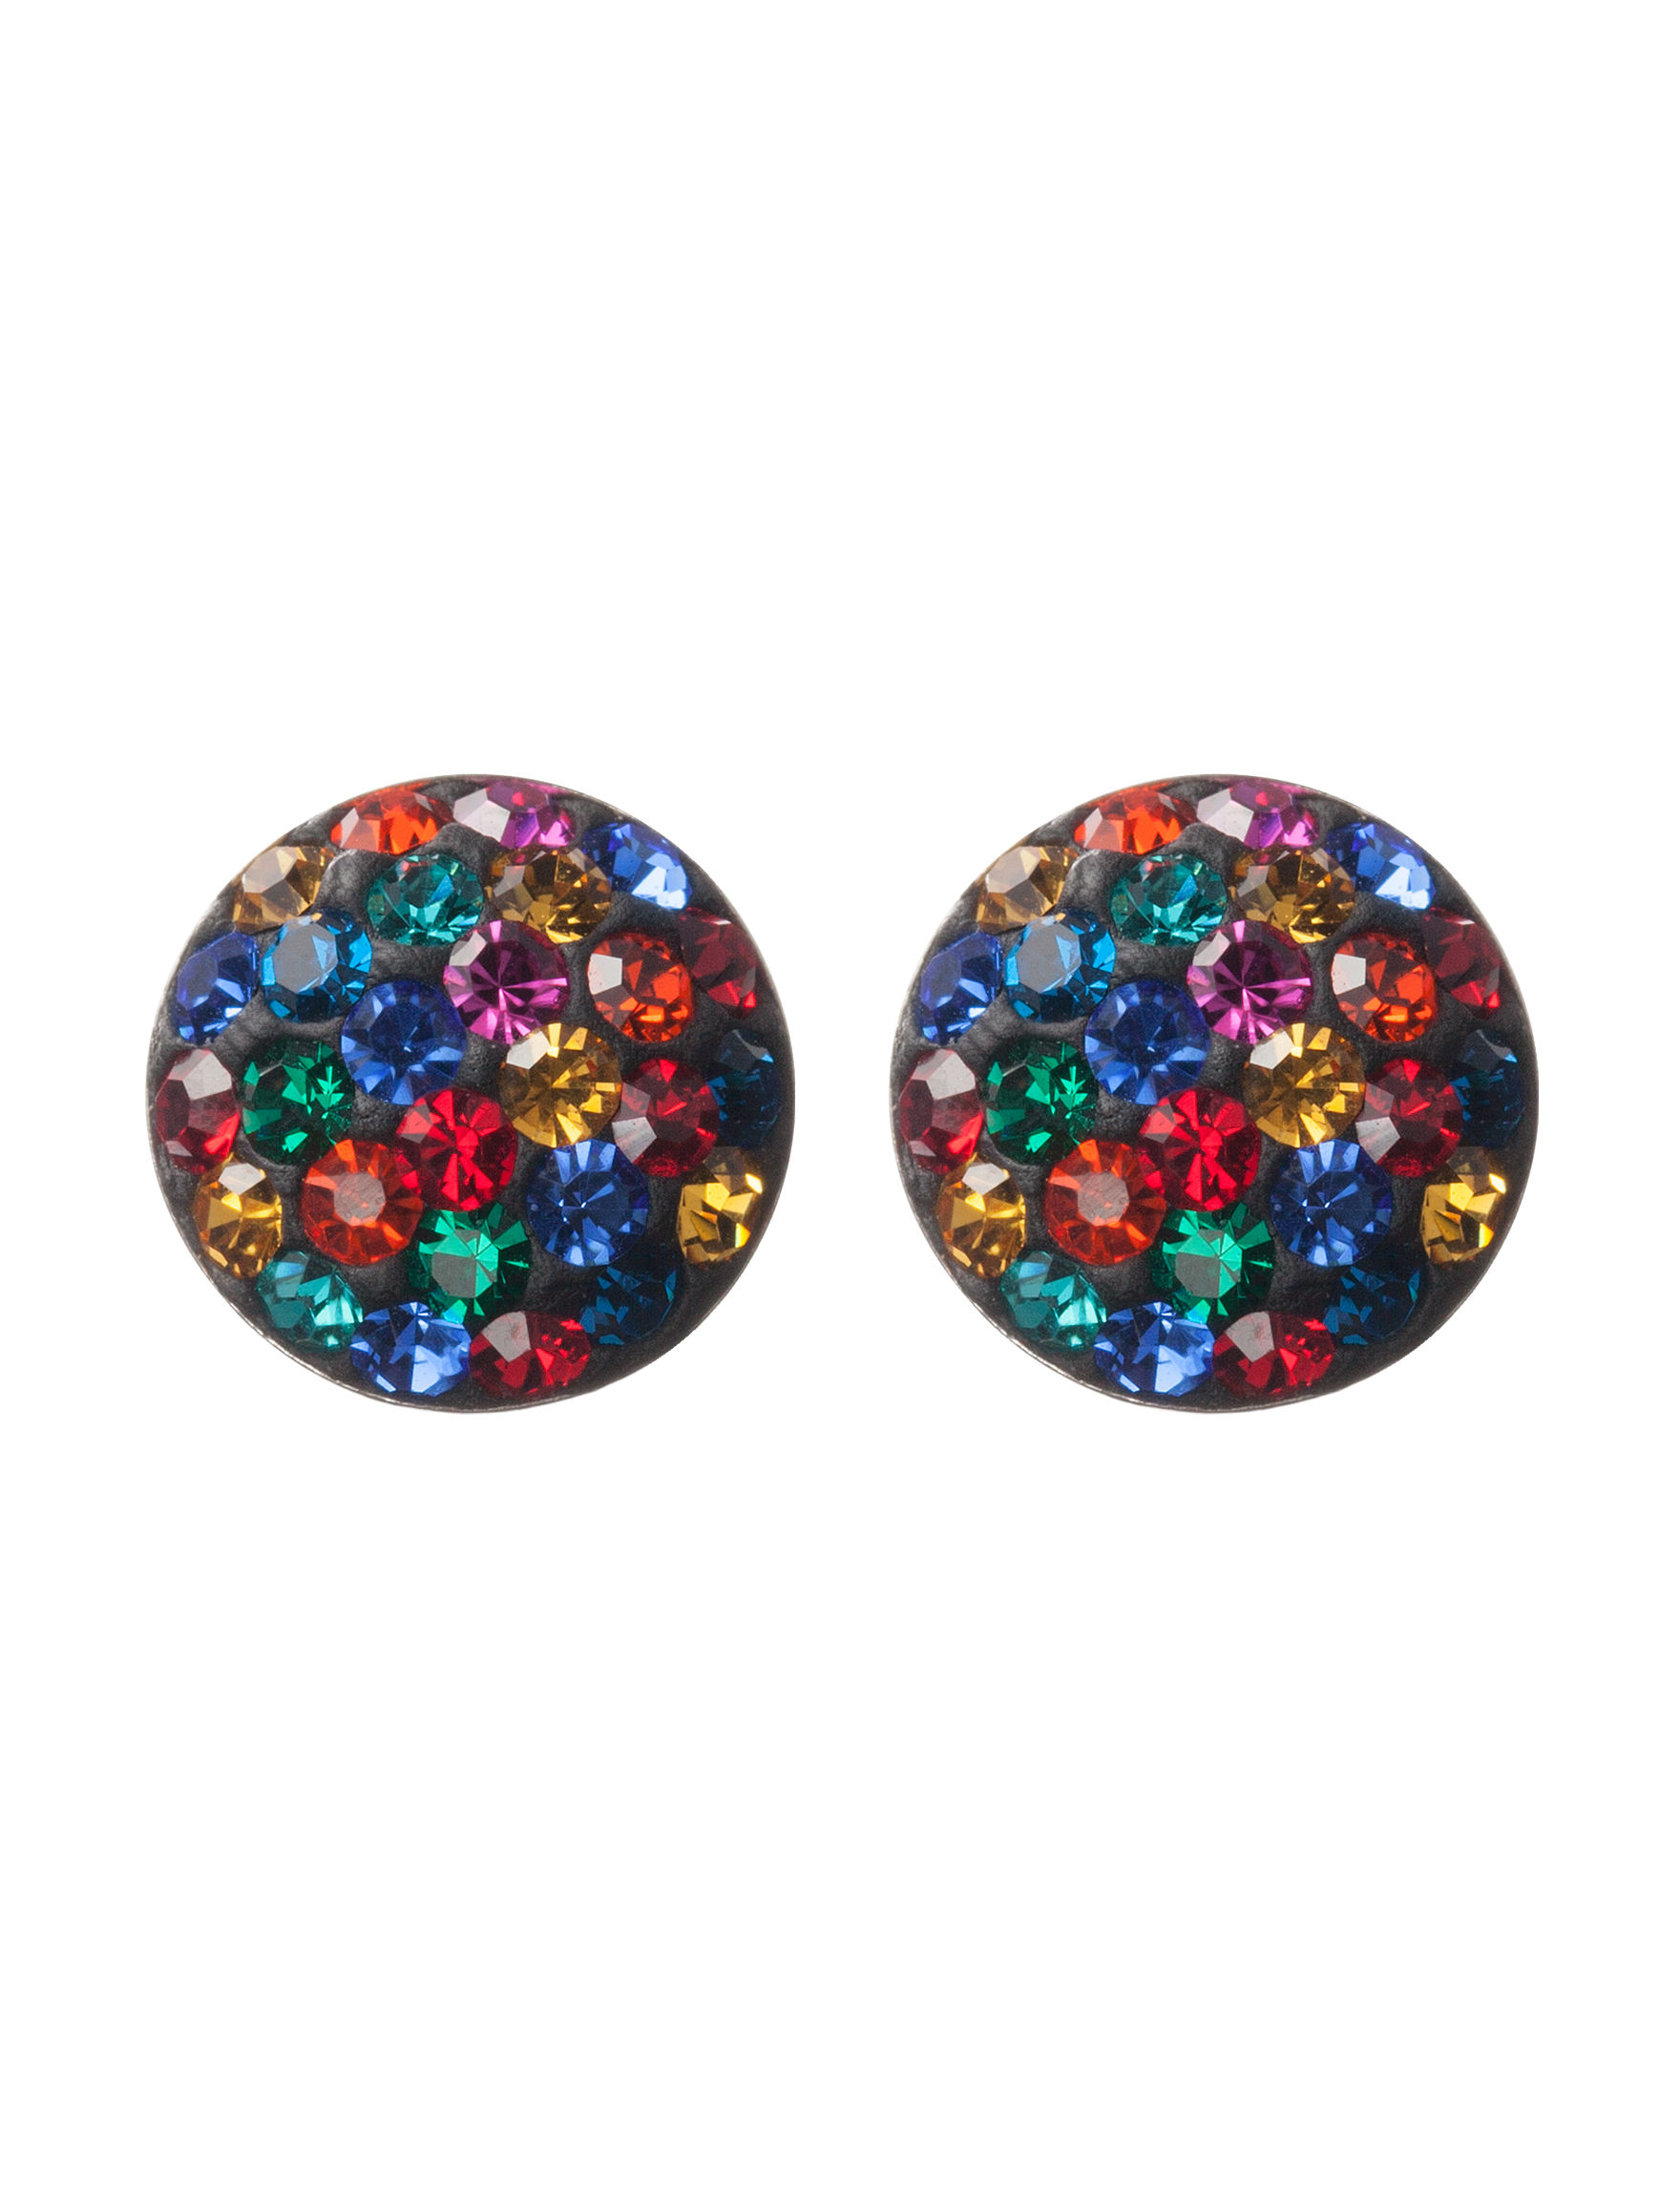 Athra Silver Studs Earrings Fine Jewelry